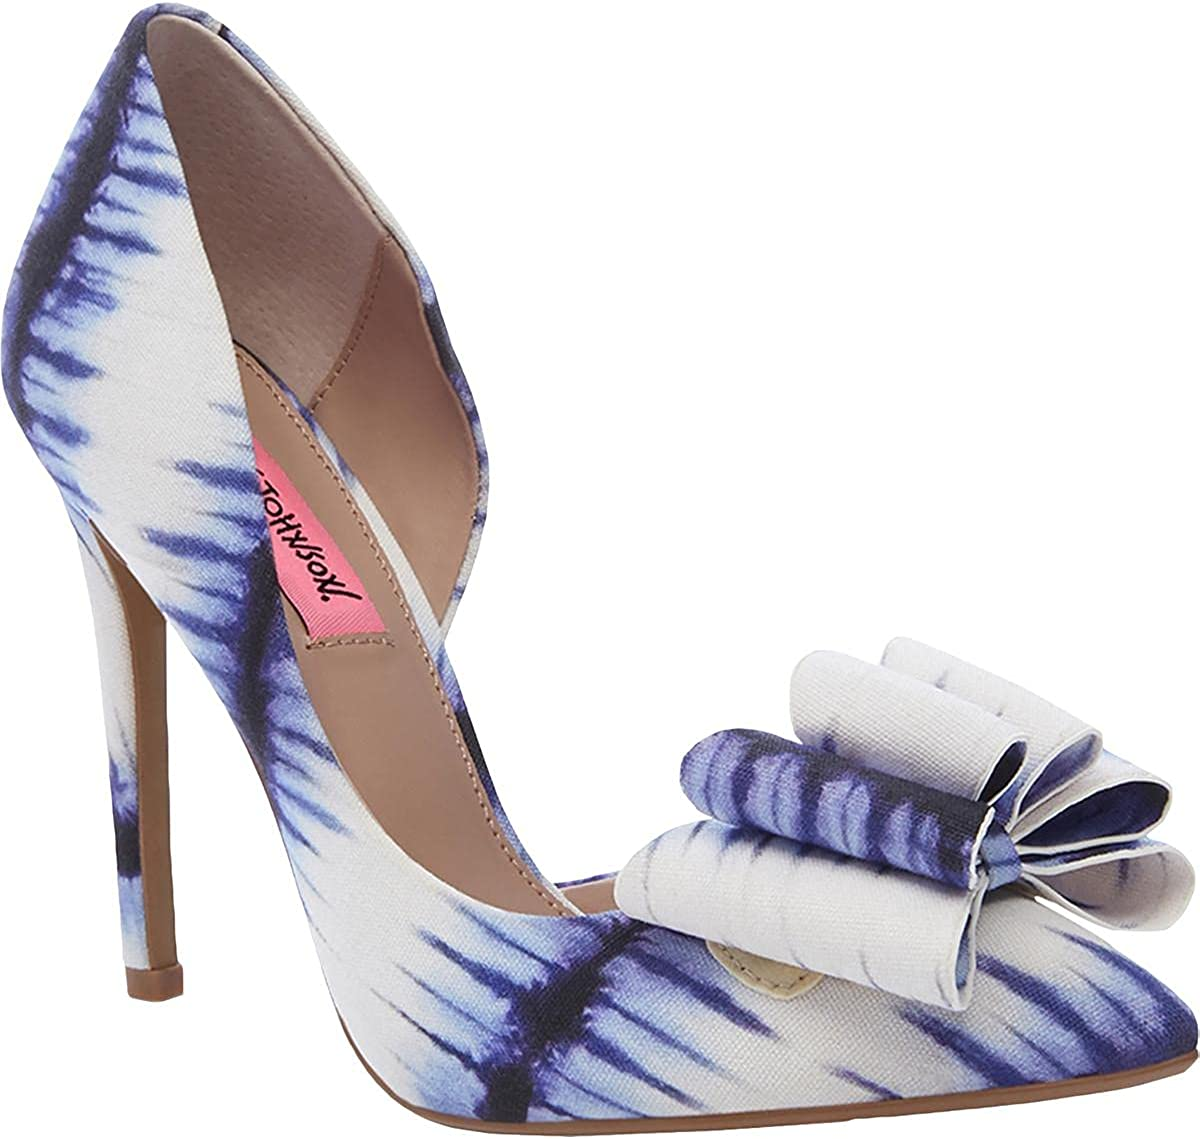 Our shop OFFers the best service Betsey Outlet ☆ Free Shipping Johnson Women's Prince-p Pump